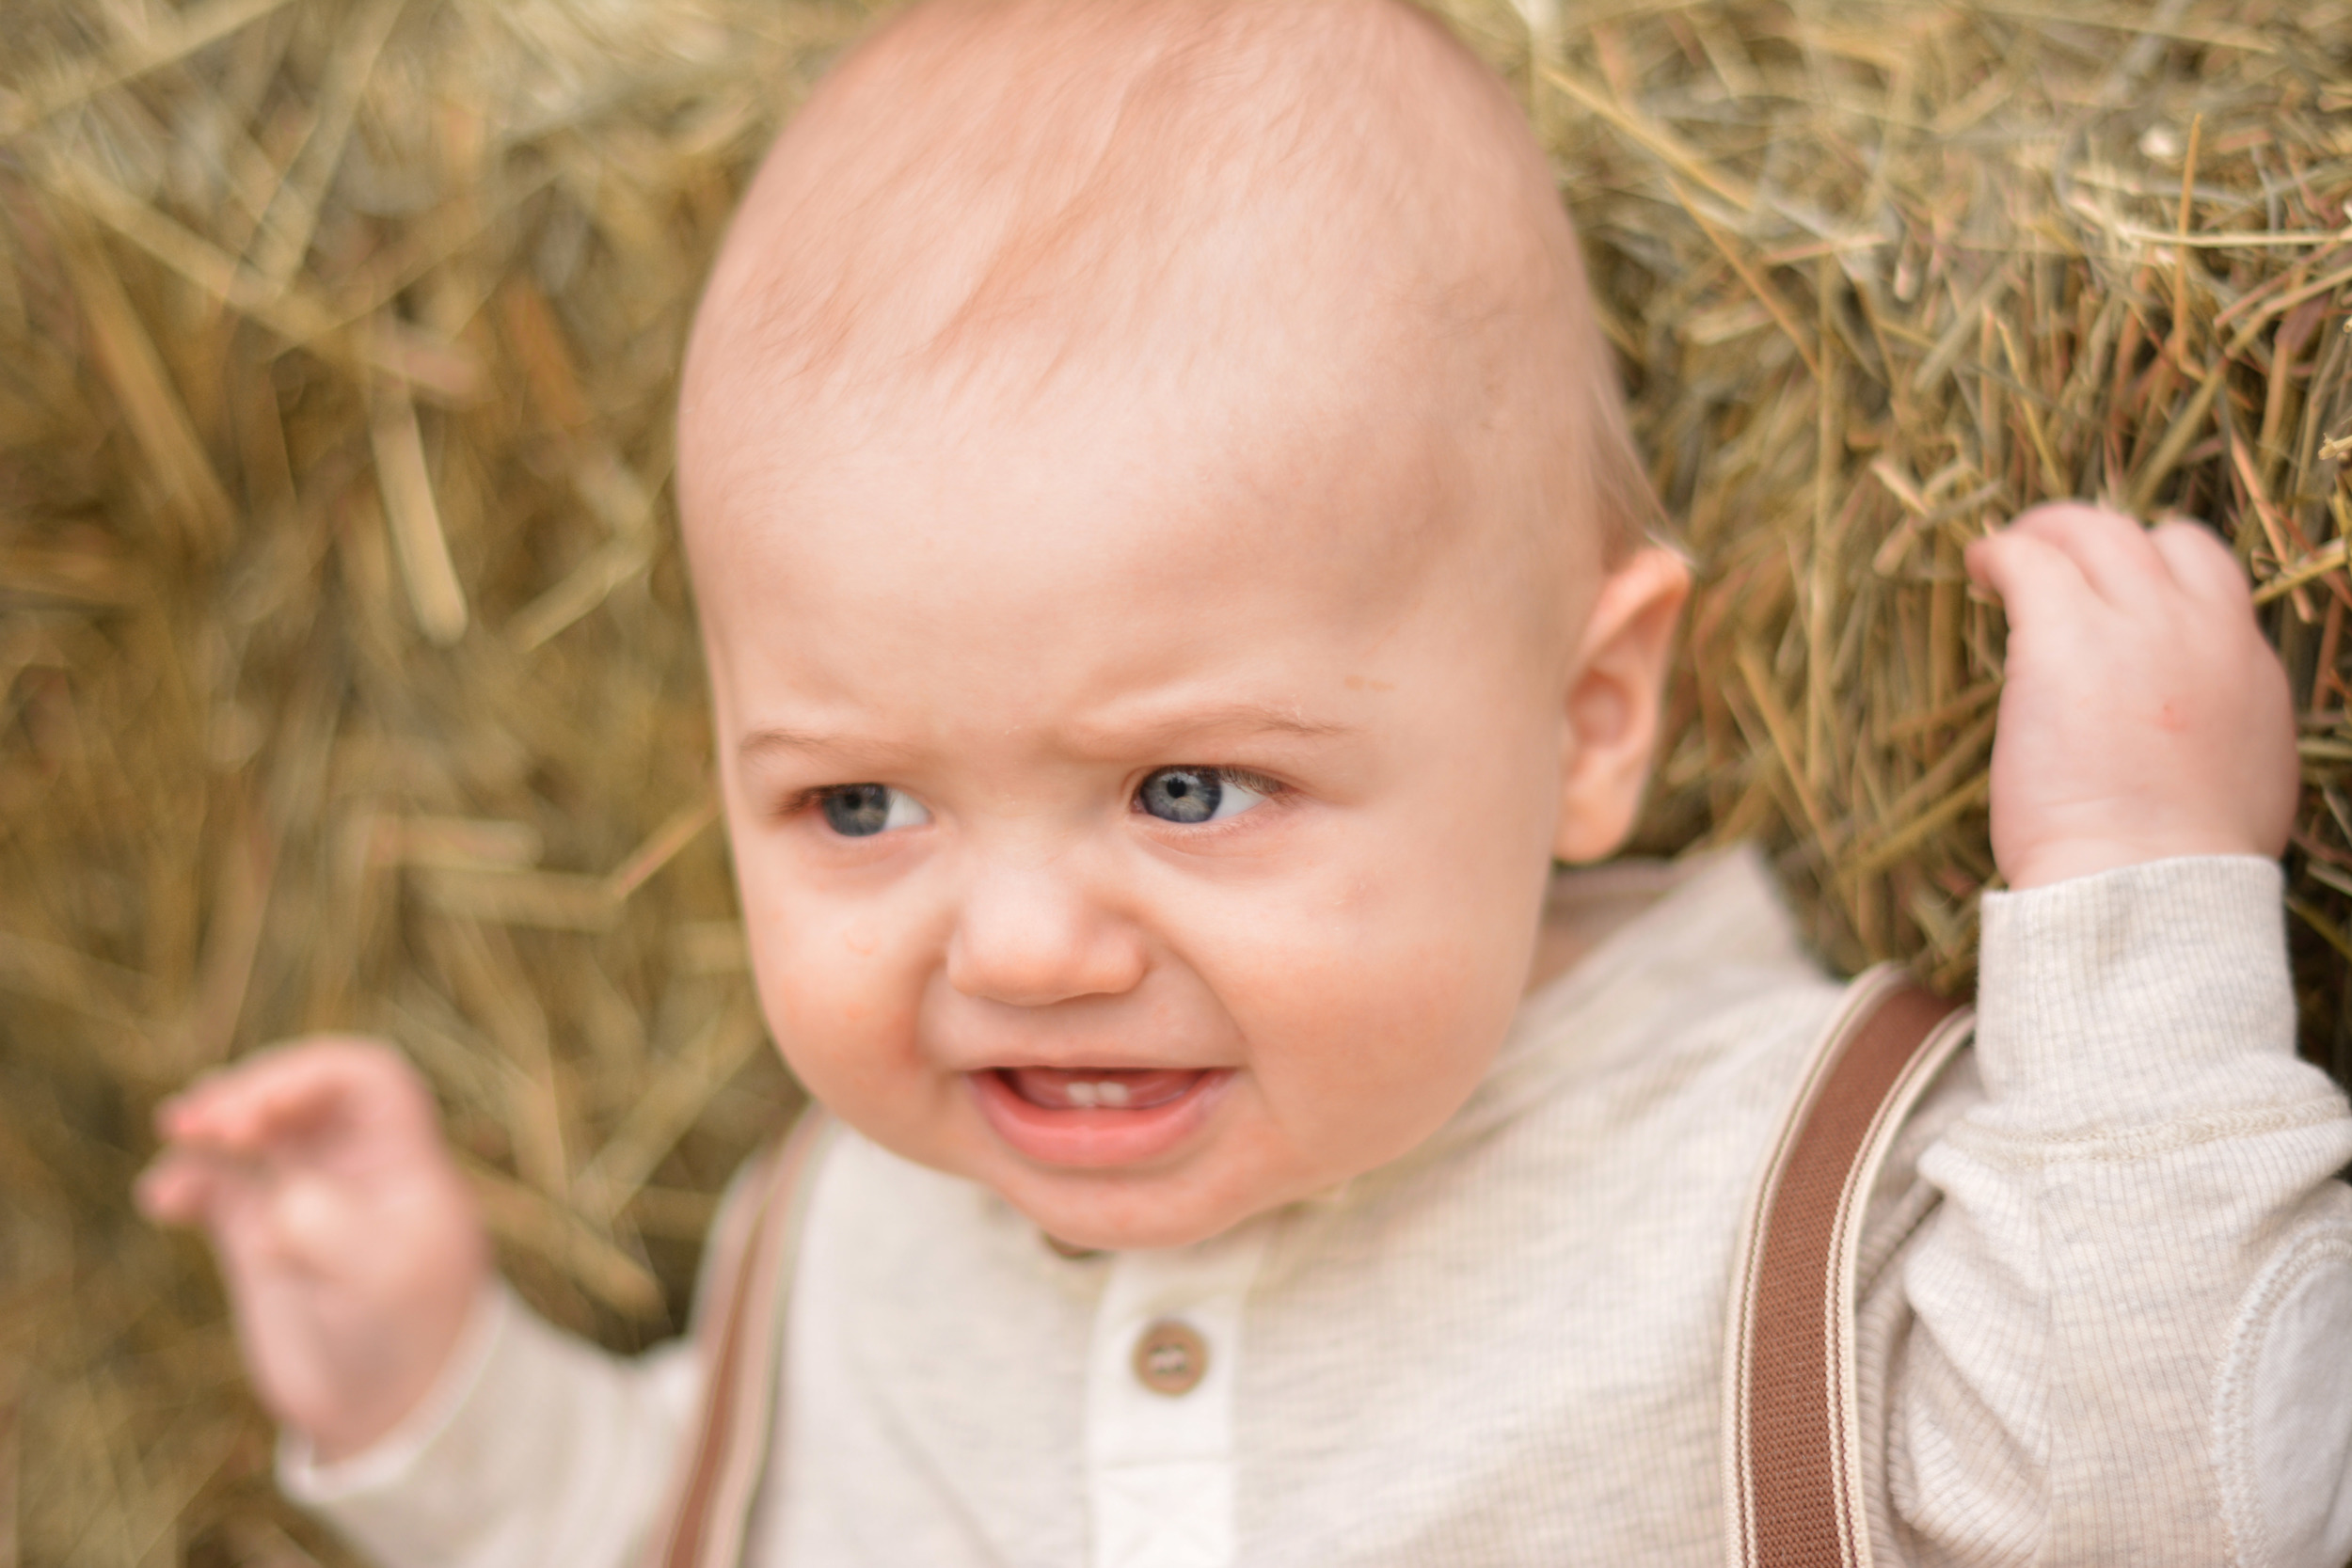 He was such a sweet funny little boy! Can't Wait to capture more photos of this adorable little man in the future!